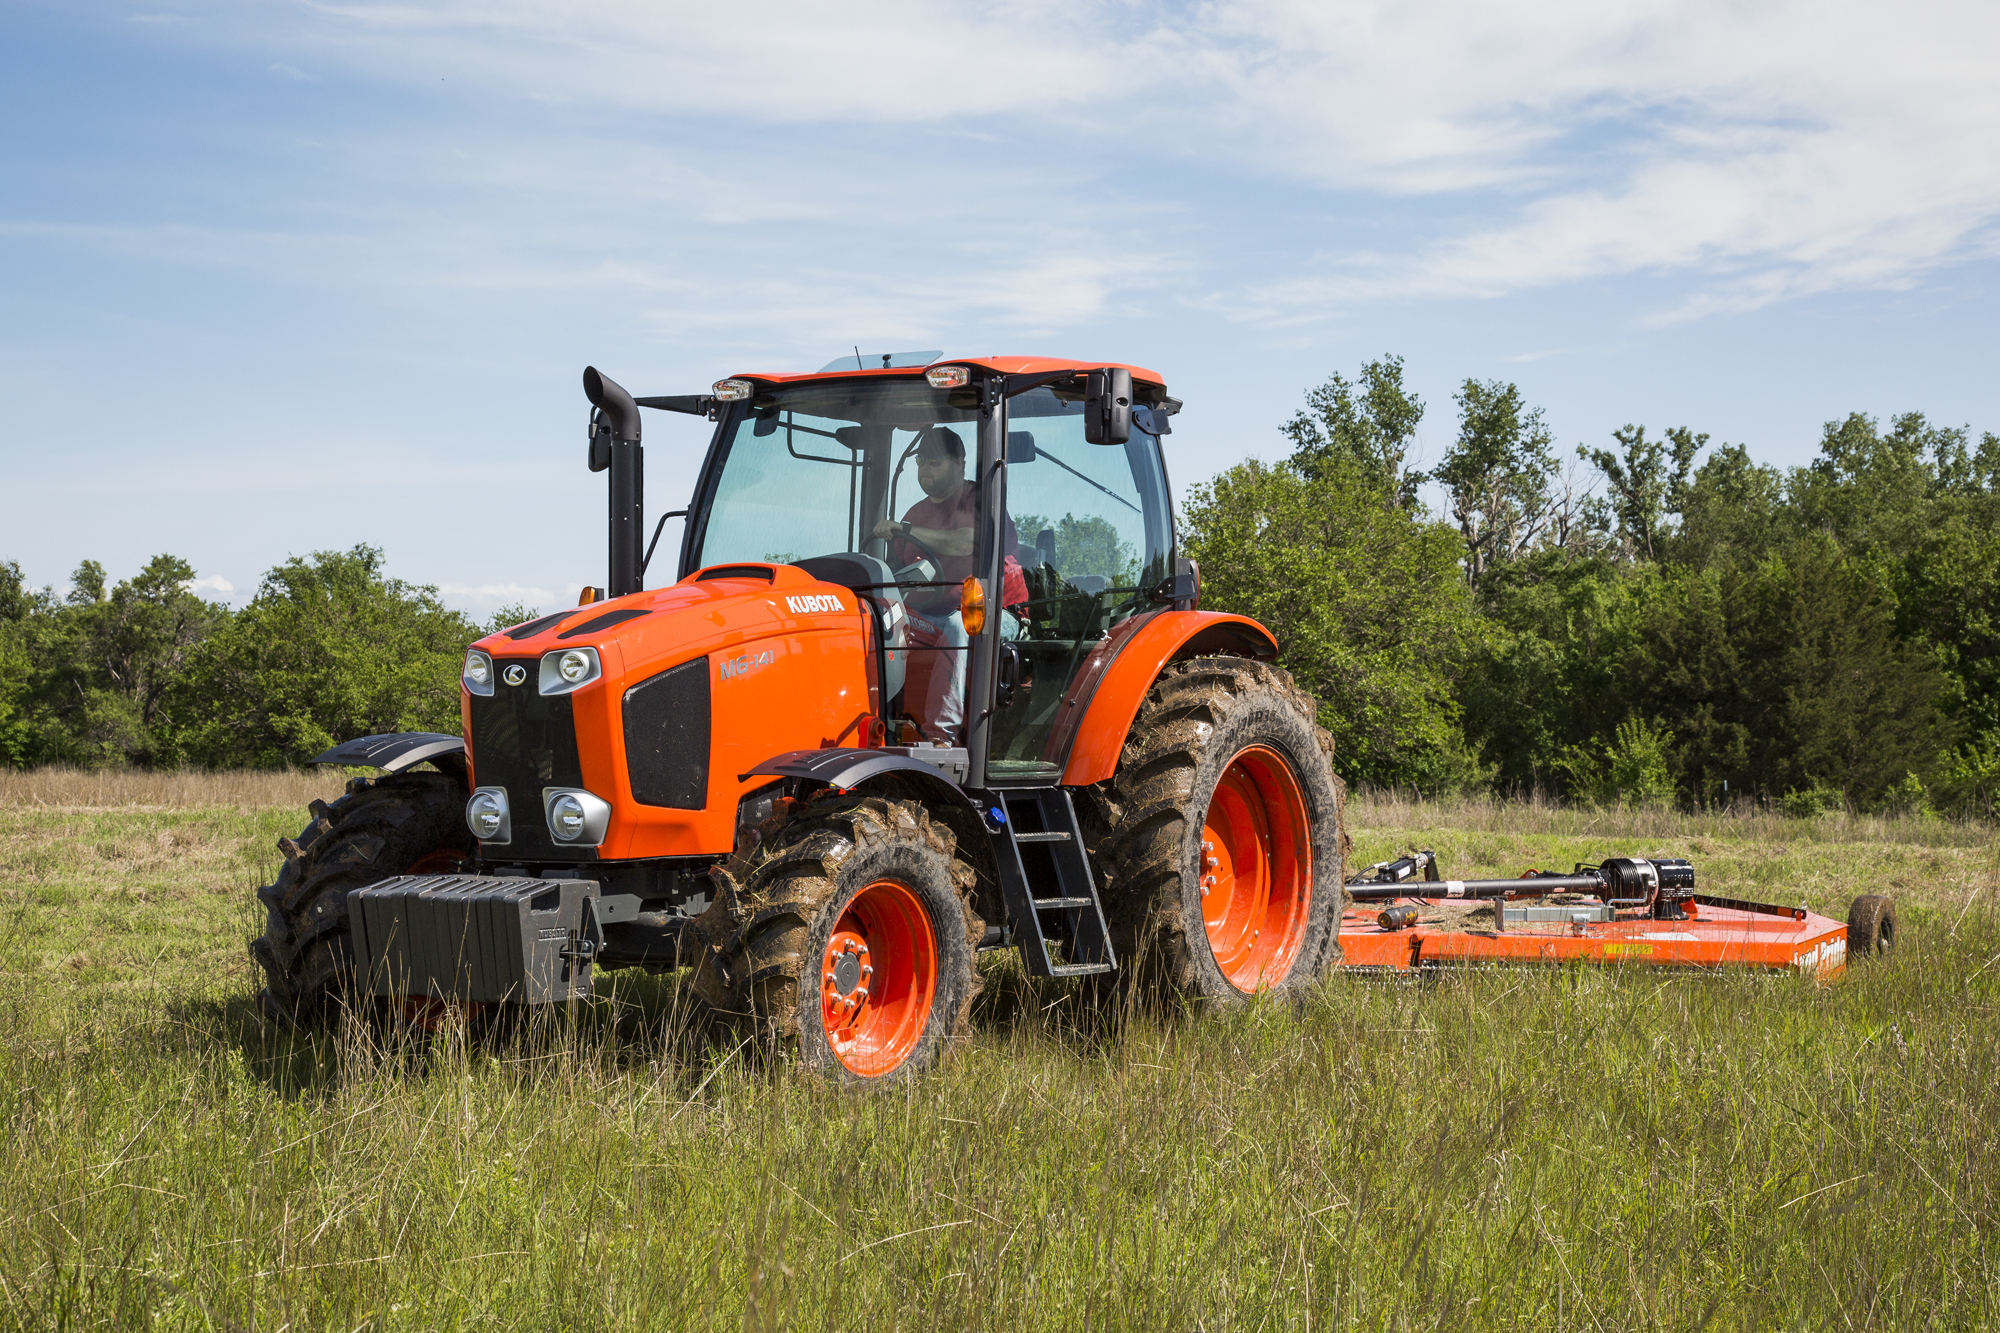 kubota introduces new m6 series utility tractor line with. Black Bedroom Furniture Sets. Home Design Ideas